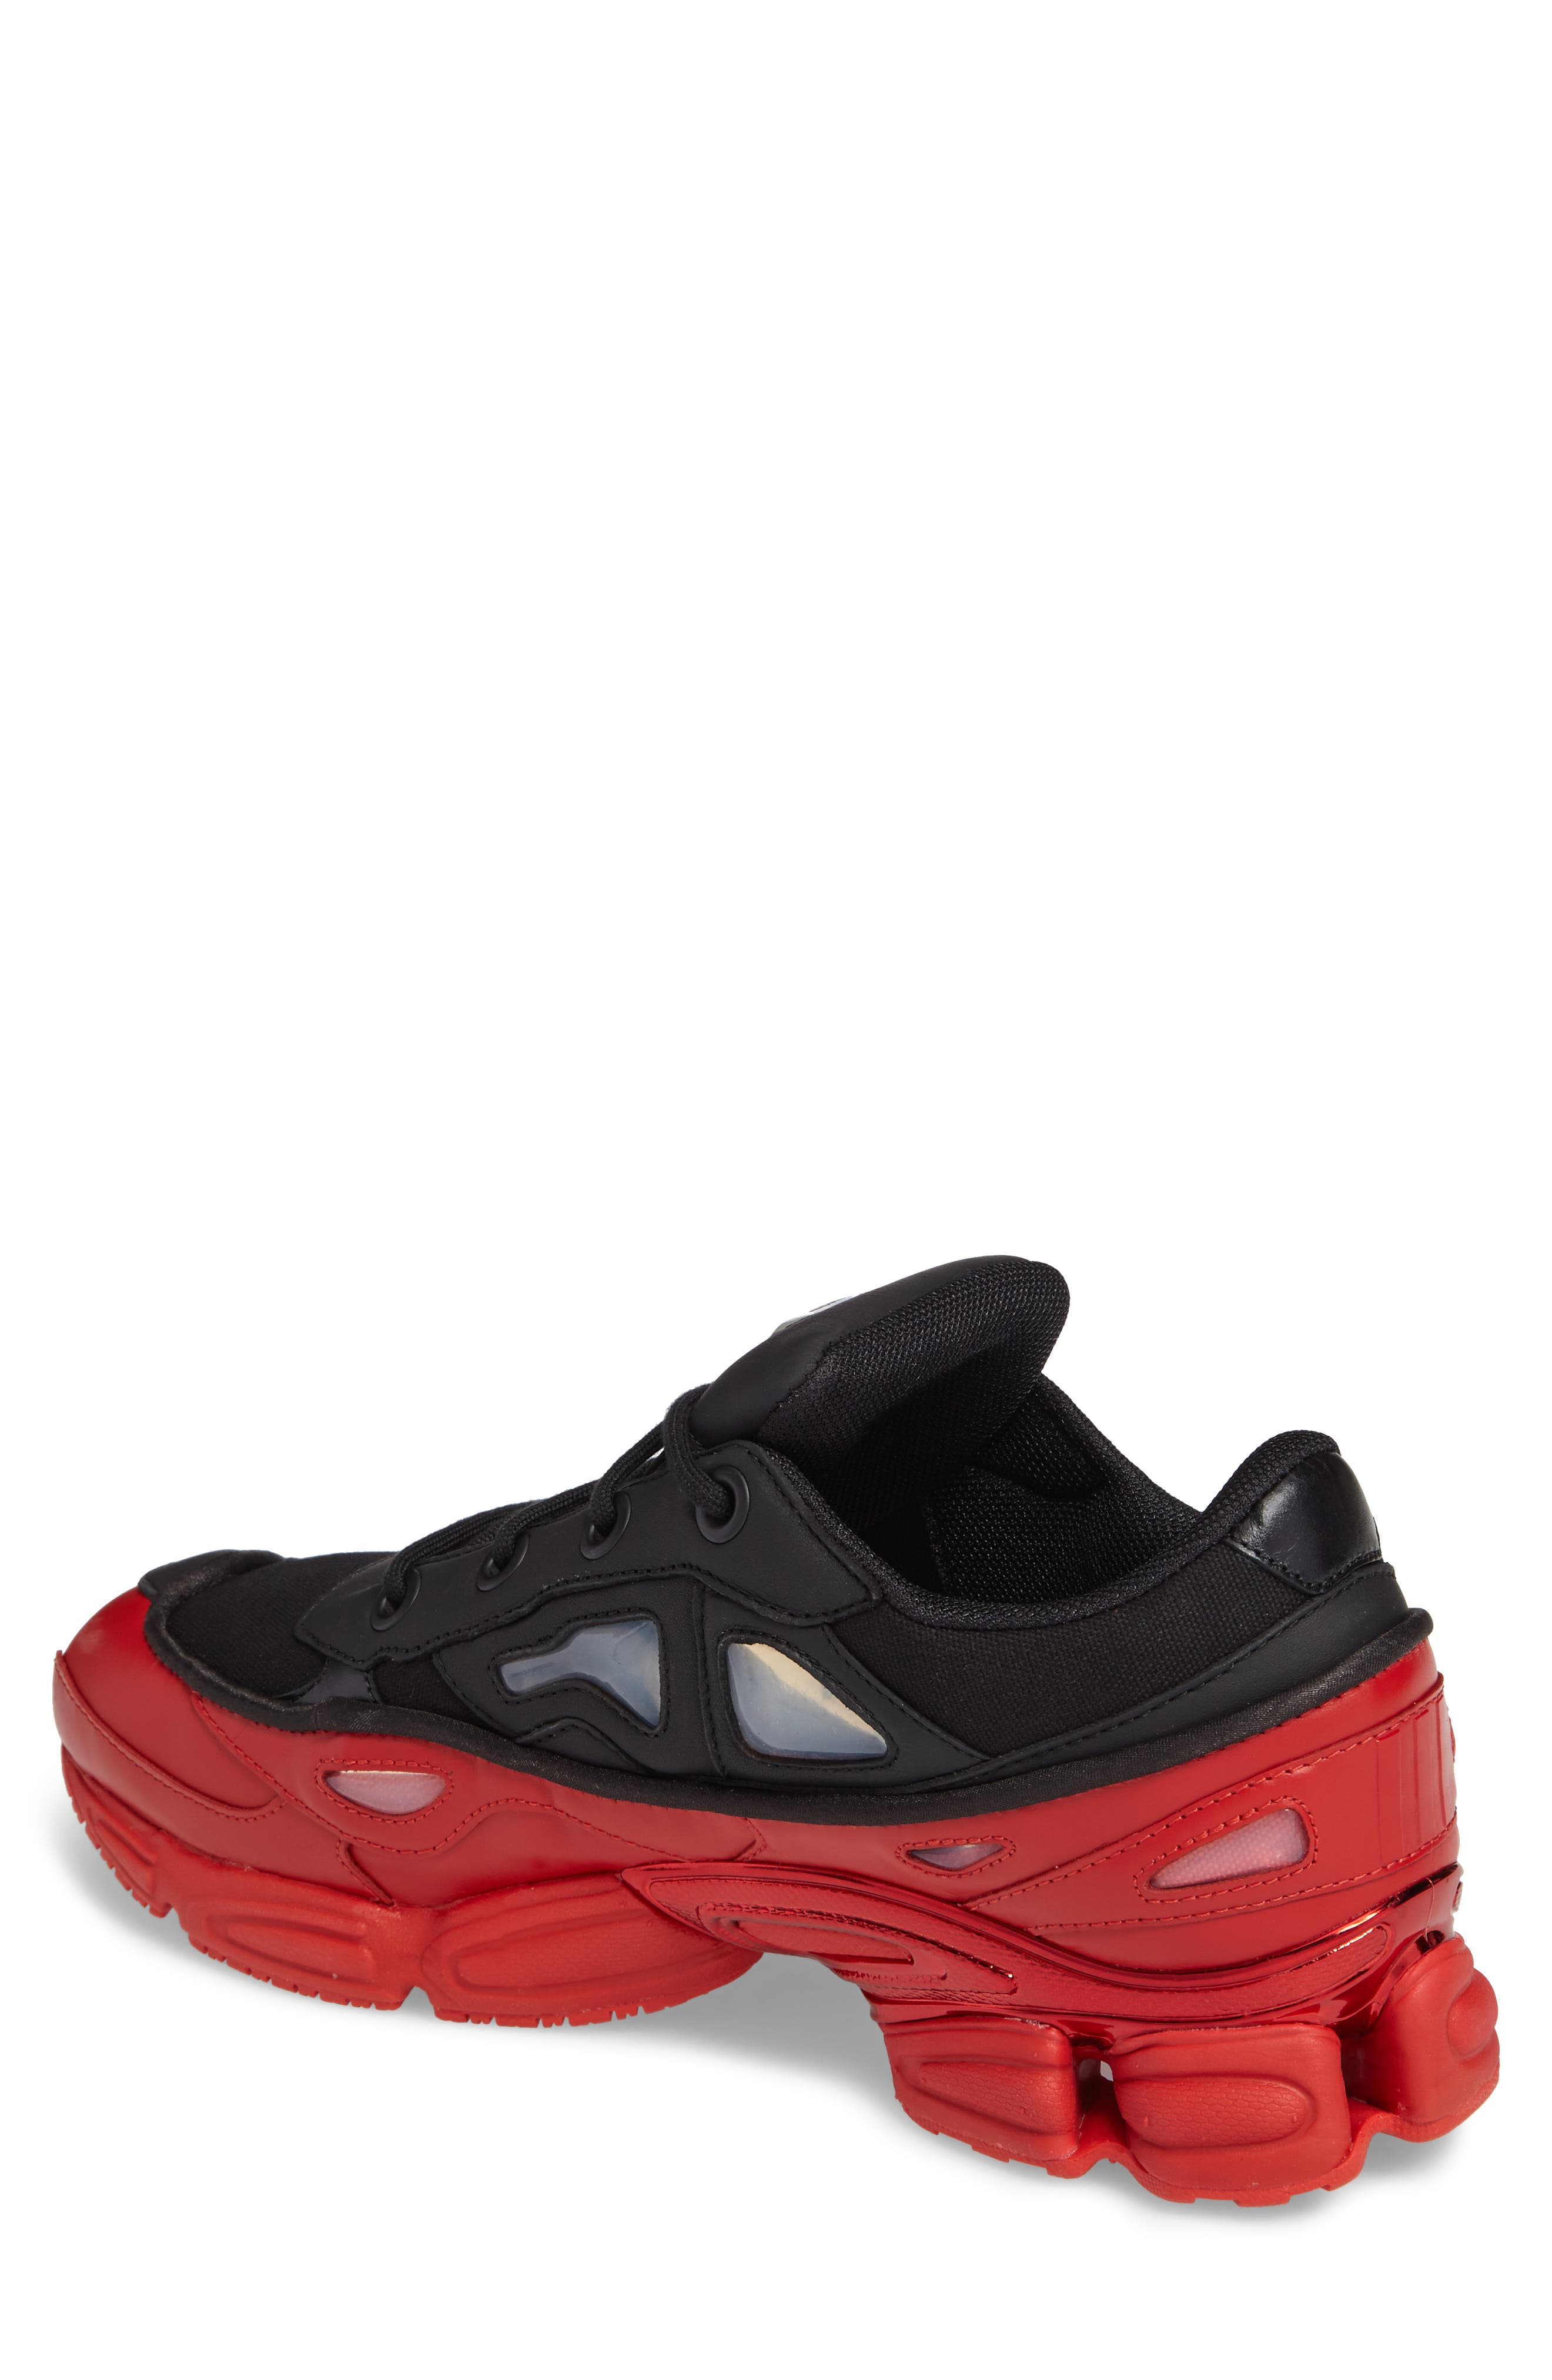 Alternate Image 2  - adidas by Raf Simons Ozweego Bunny Sneaker (Men)